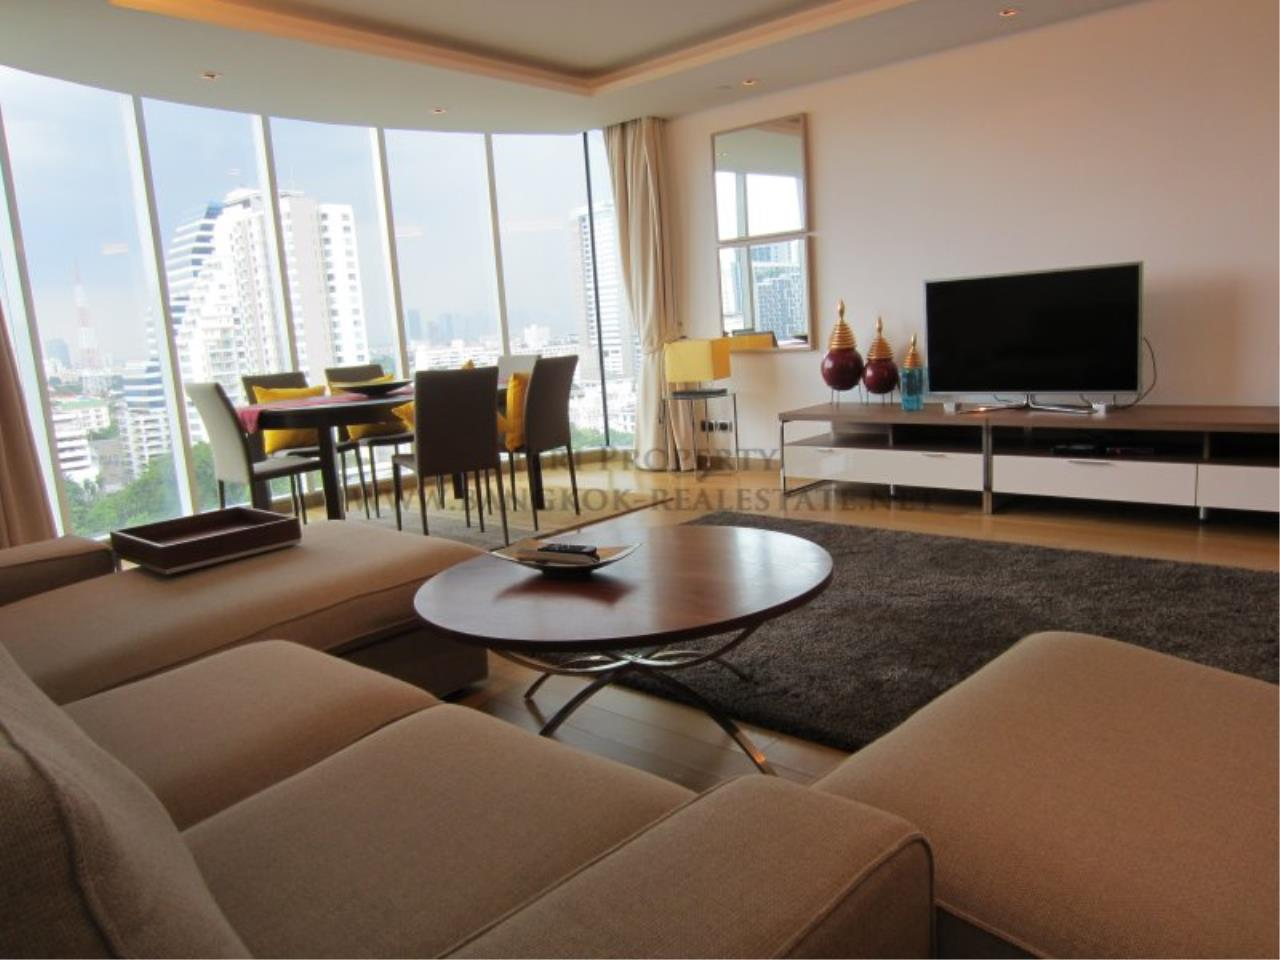 Piri Property Agency's Spacious 2 Bedroom Condo or Rent in Ari - Le Monaco 2